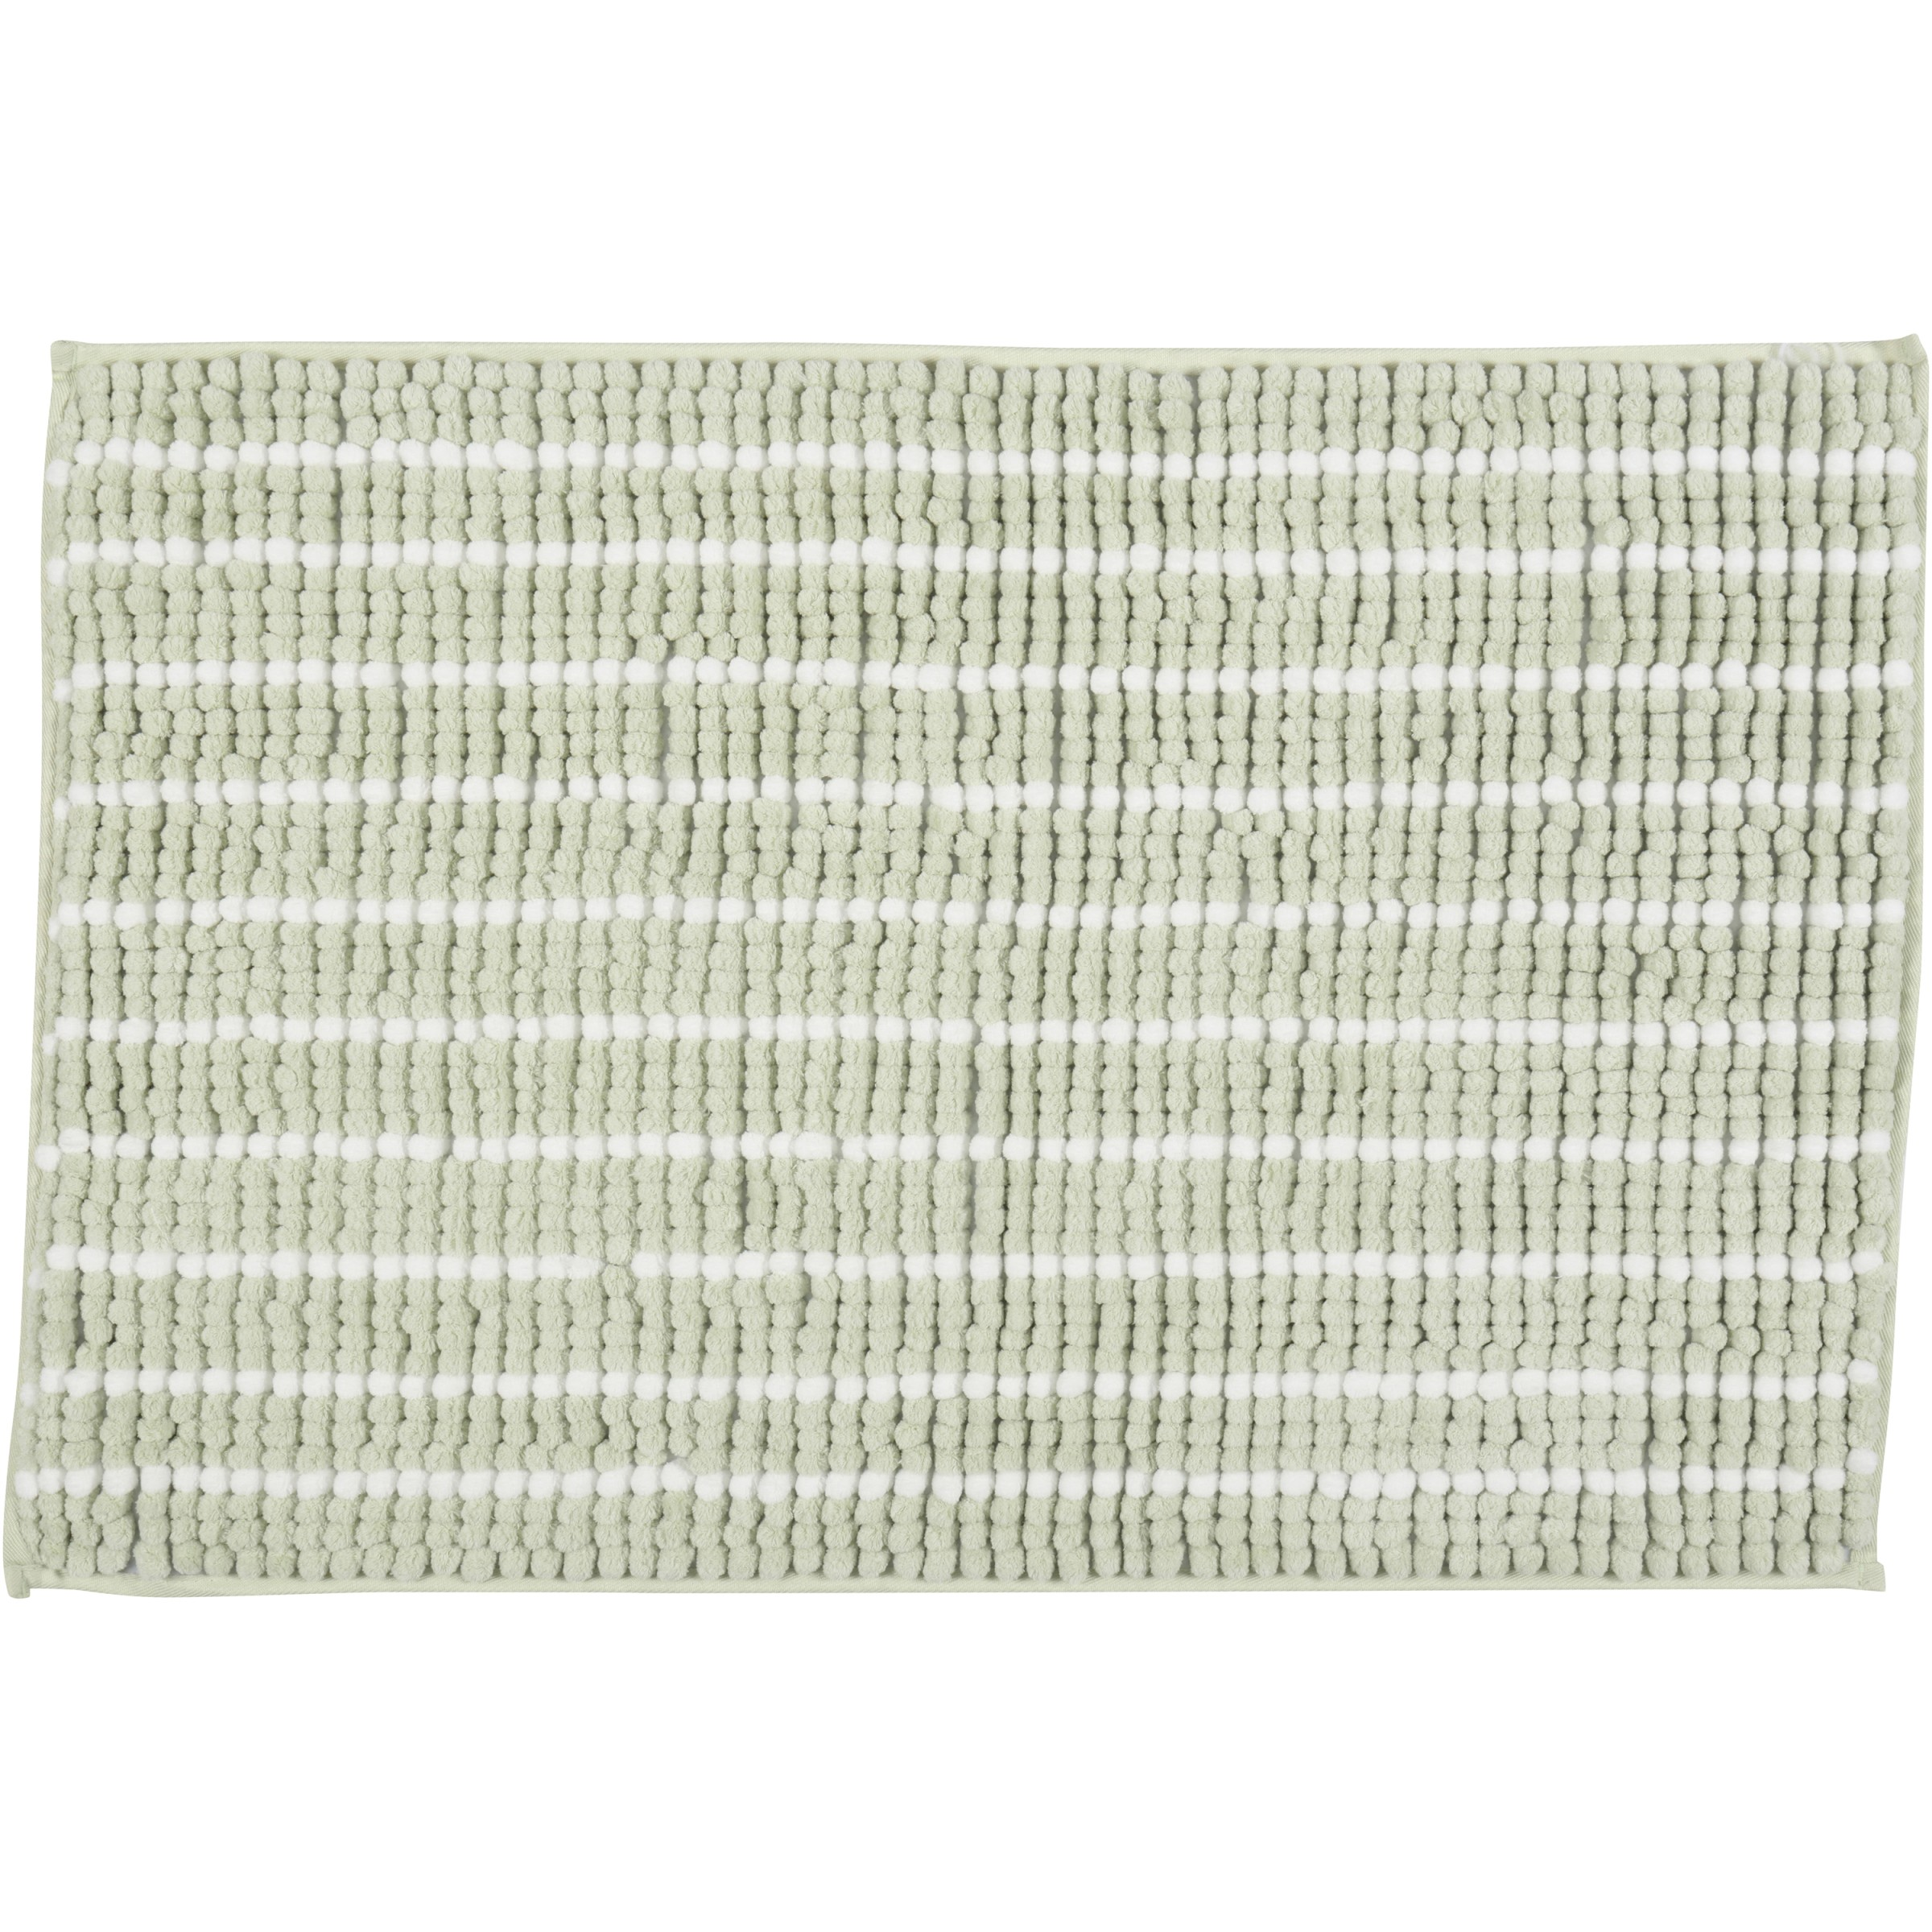 Mainstays Multi-Striped Noodle Bath Rug by Wal-Mart Stores, Inc.